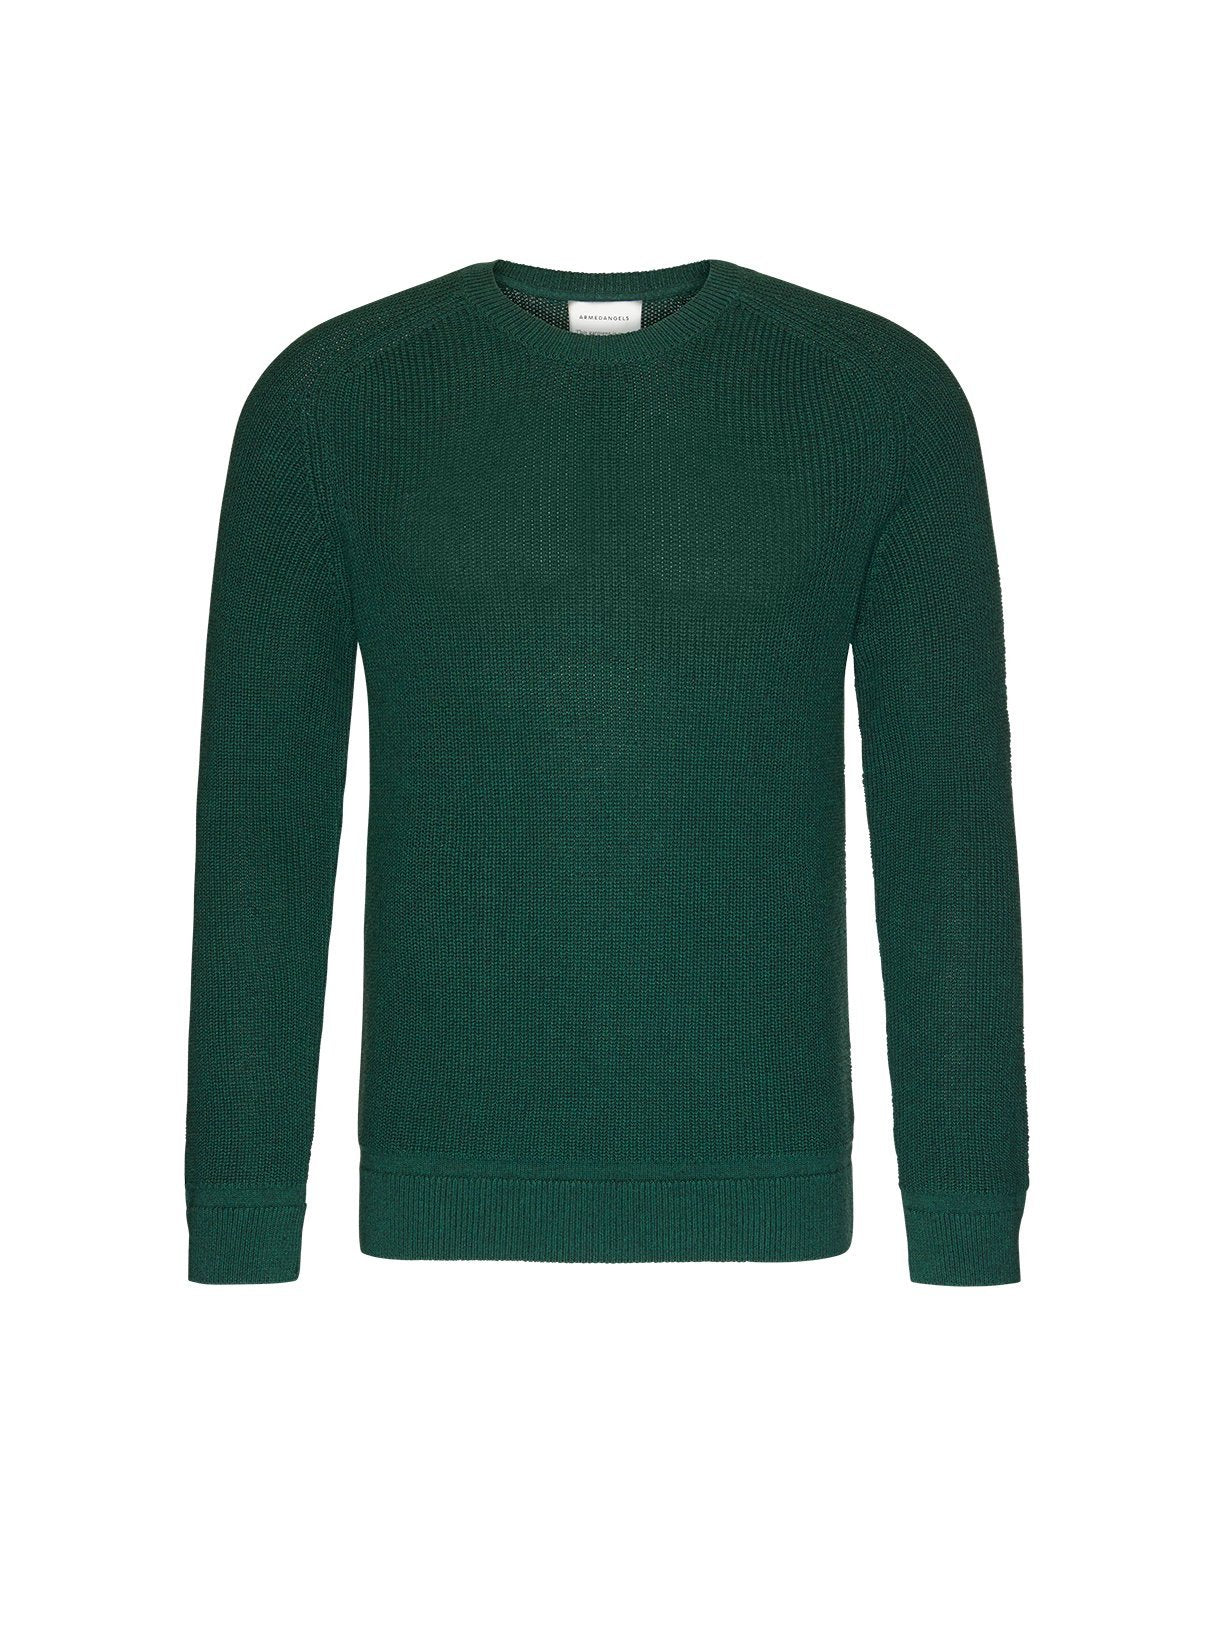 Aandri - sweater - college green melange